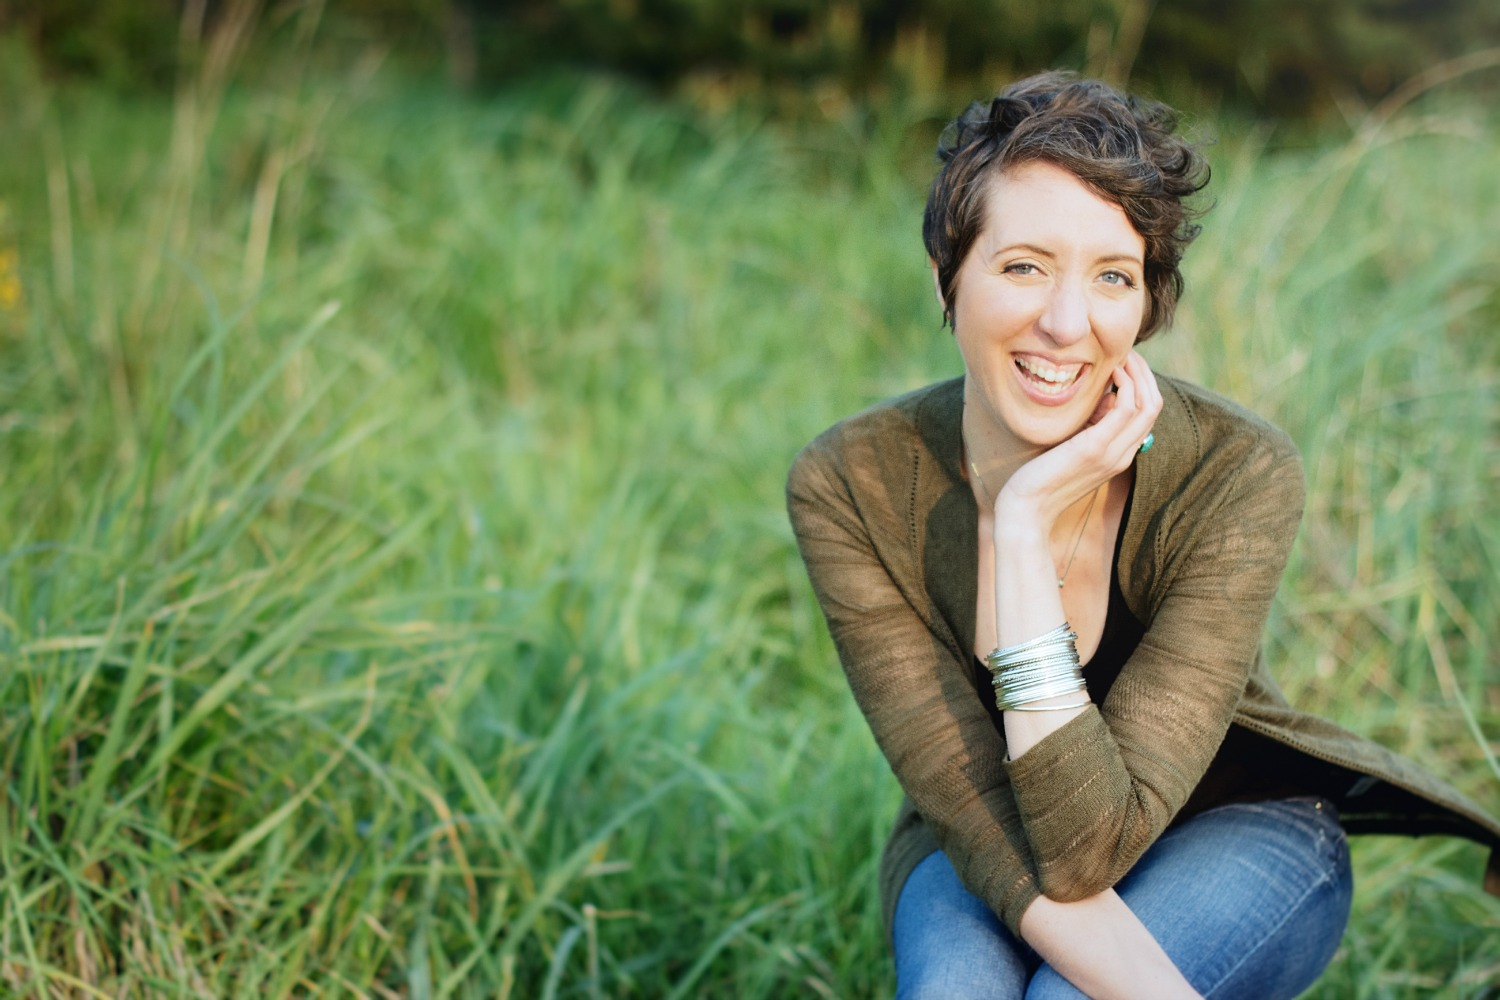 Taking Messy Action with Christine Blubaugh